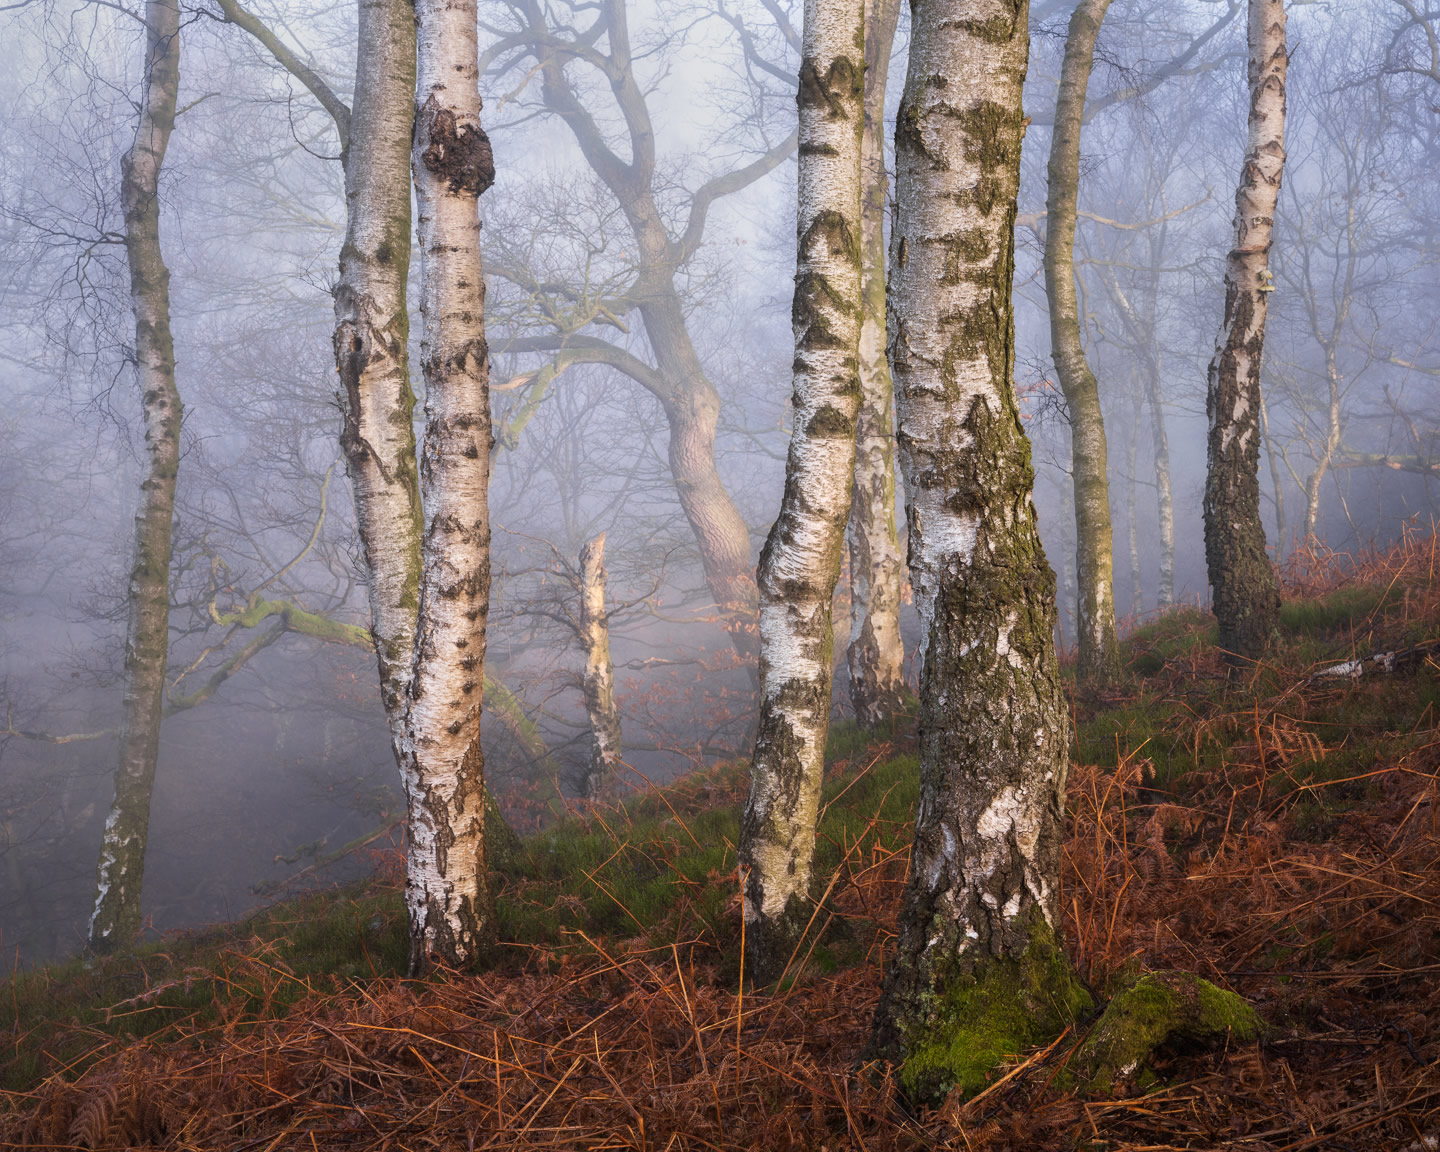 Above The Beck - Woodland Photography by Simon Baxter